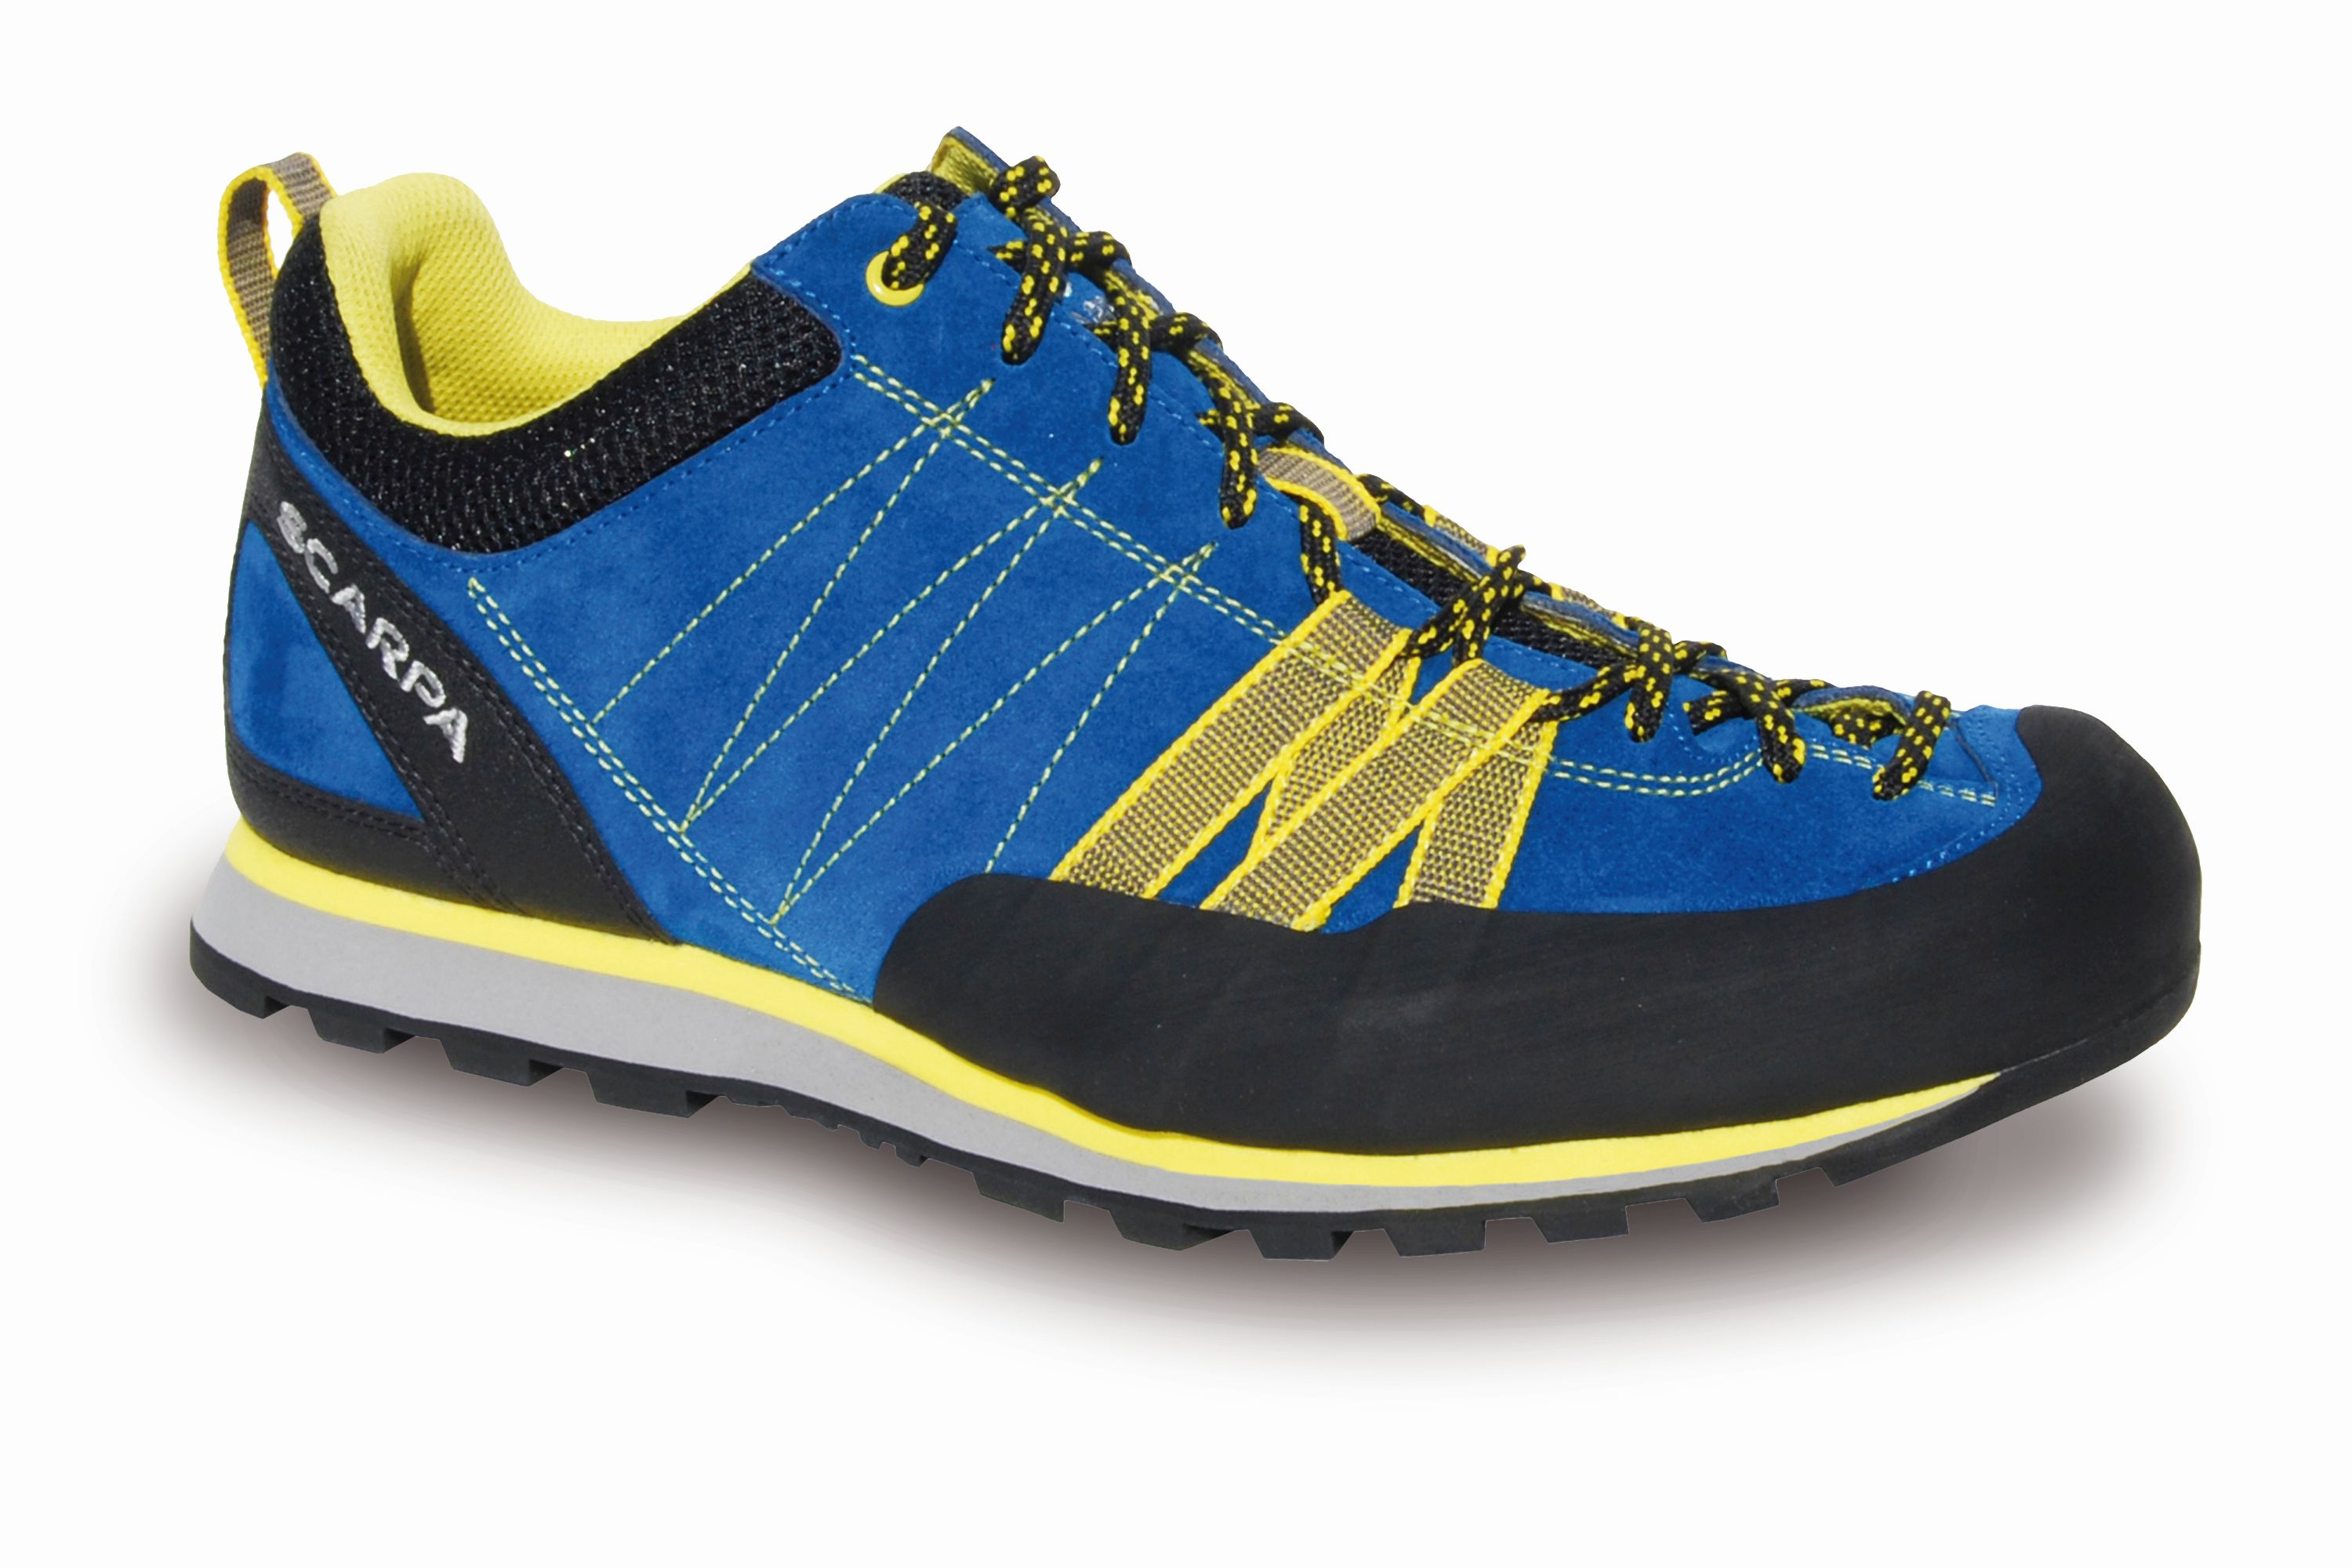 Scarpa Crux Hyper blue/Yellow-30